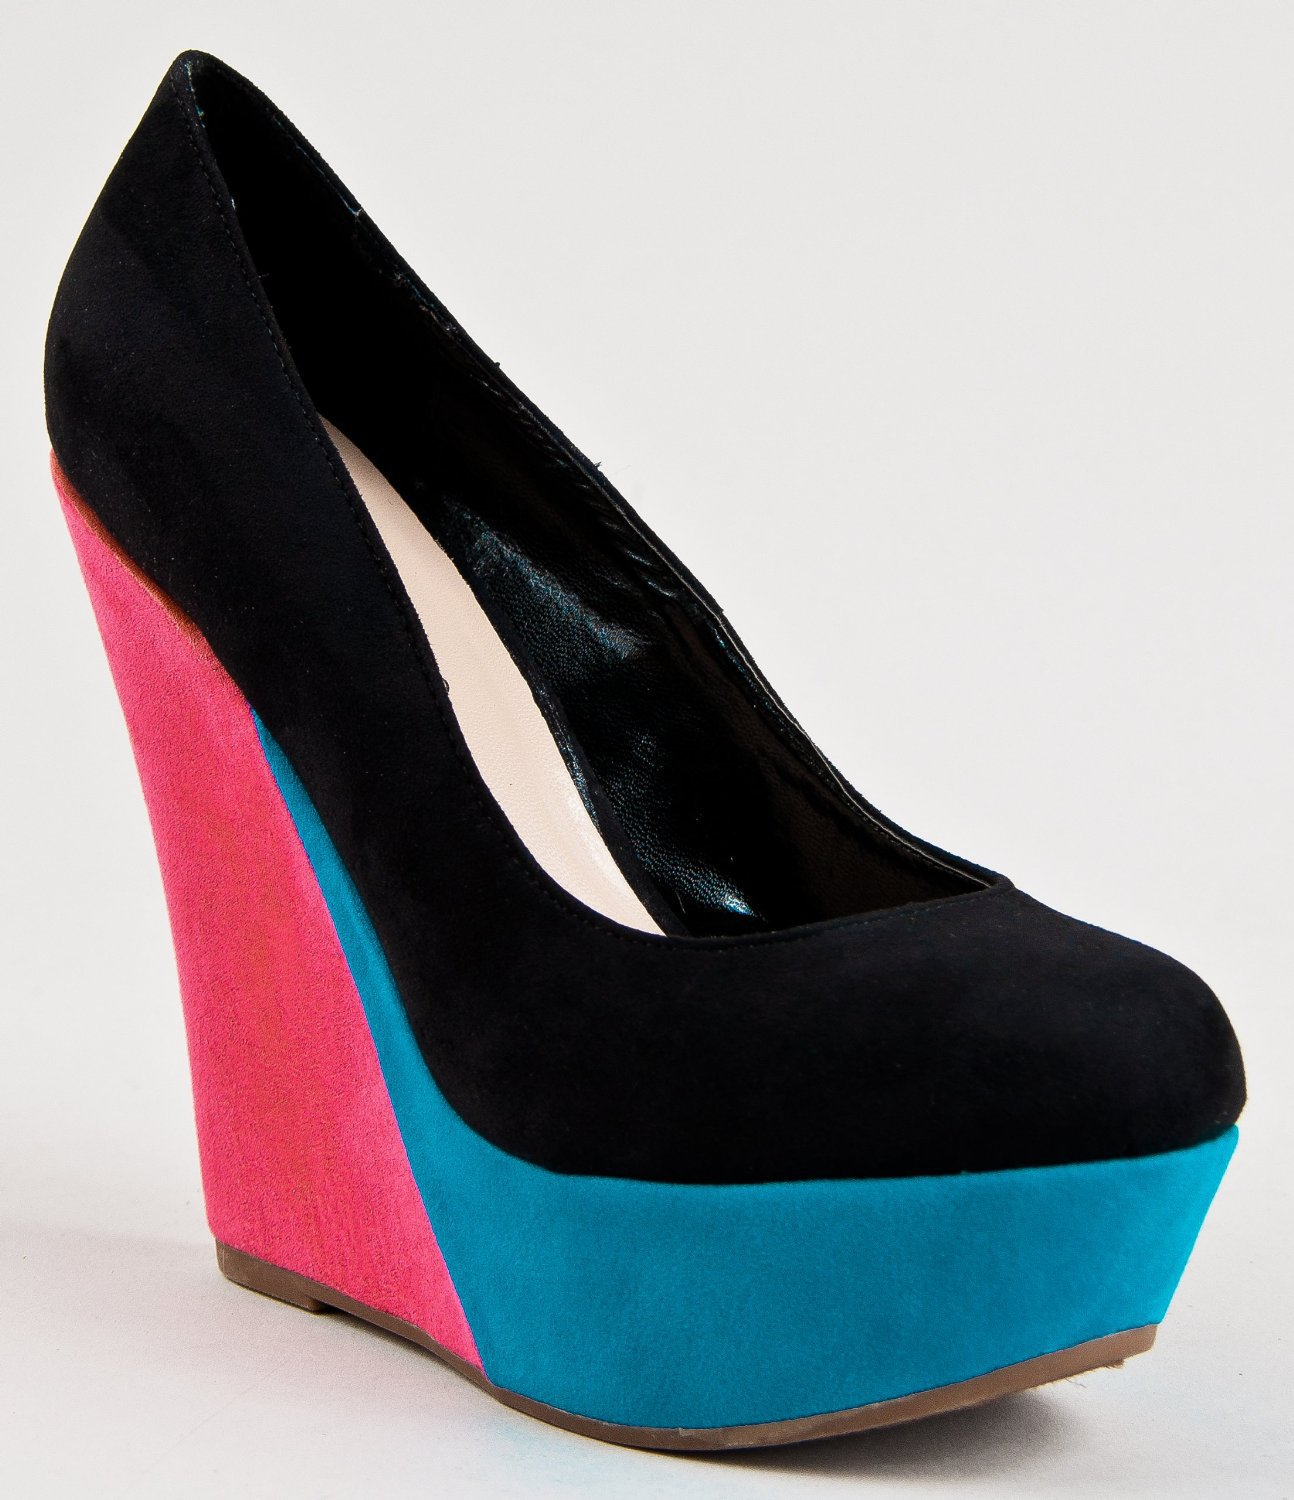 Breckelle's CILO-08 Colorblock Slip On Wedge Heel